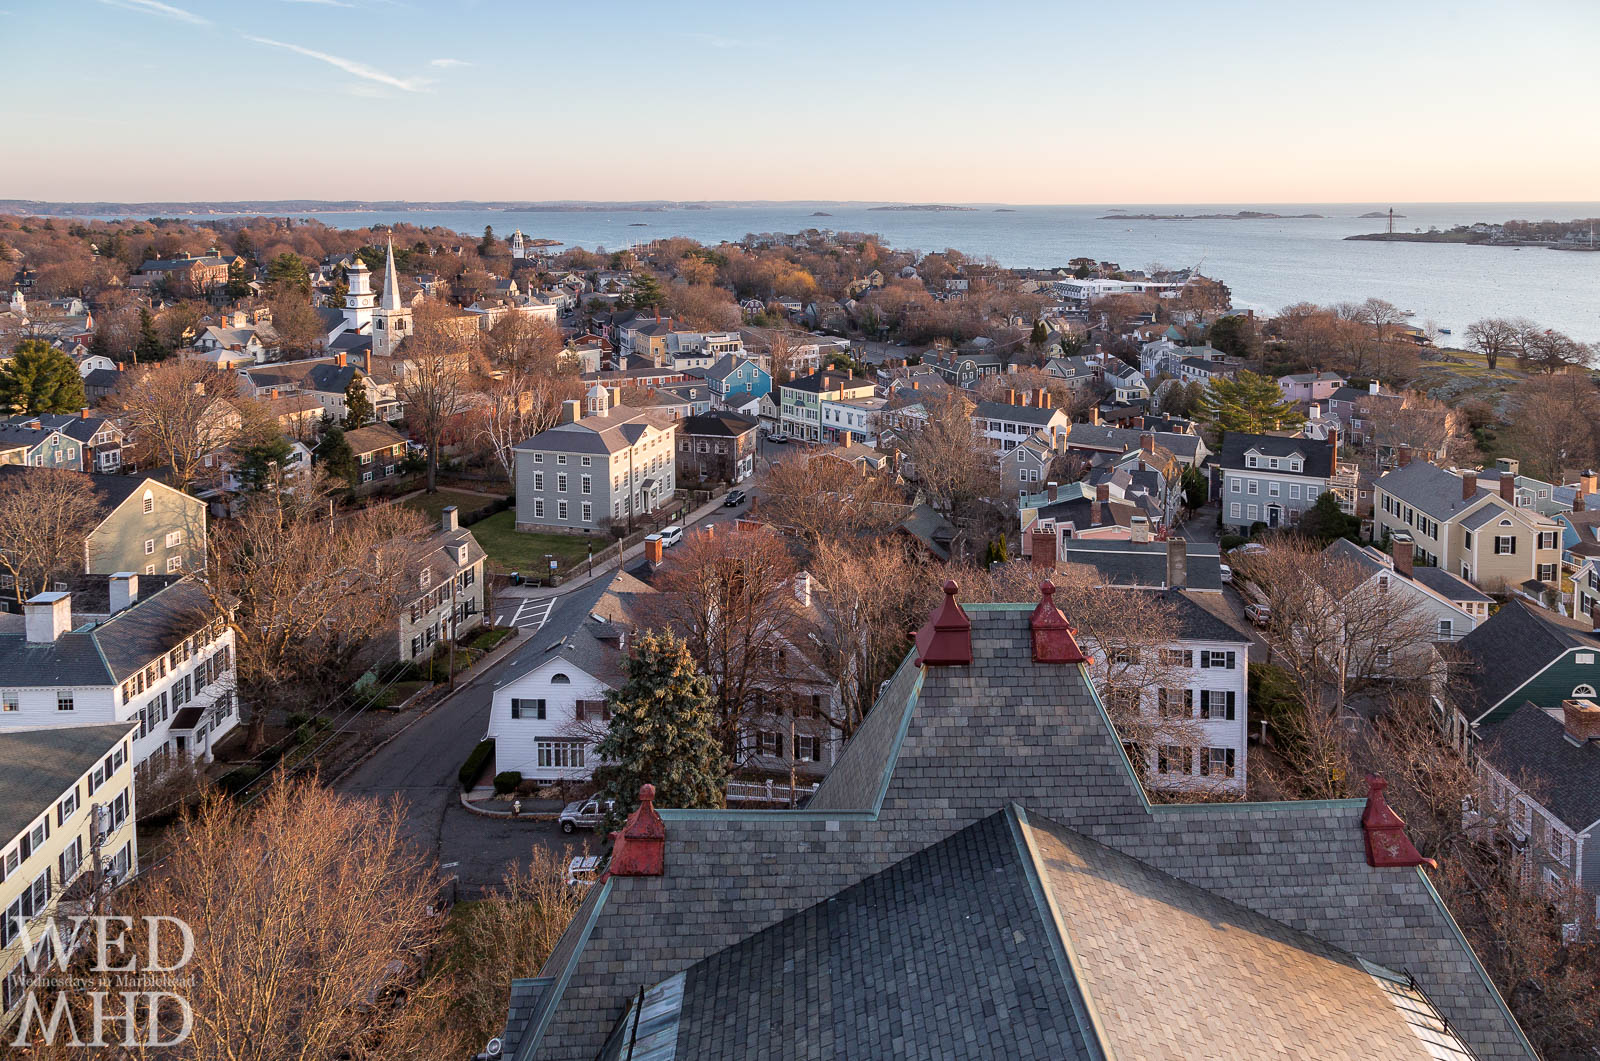 view of historic downtown Marblehead from the top of Abbot Hall tower